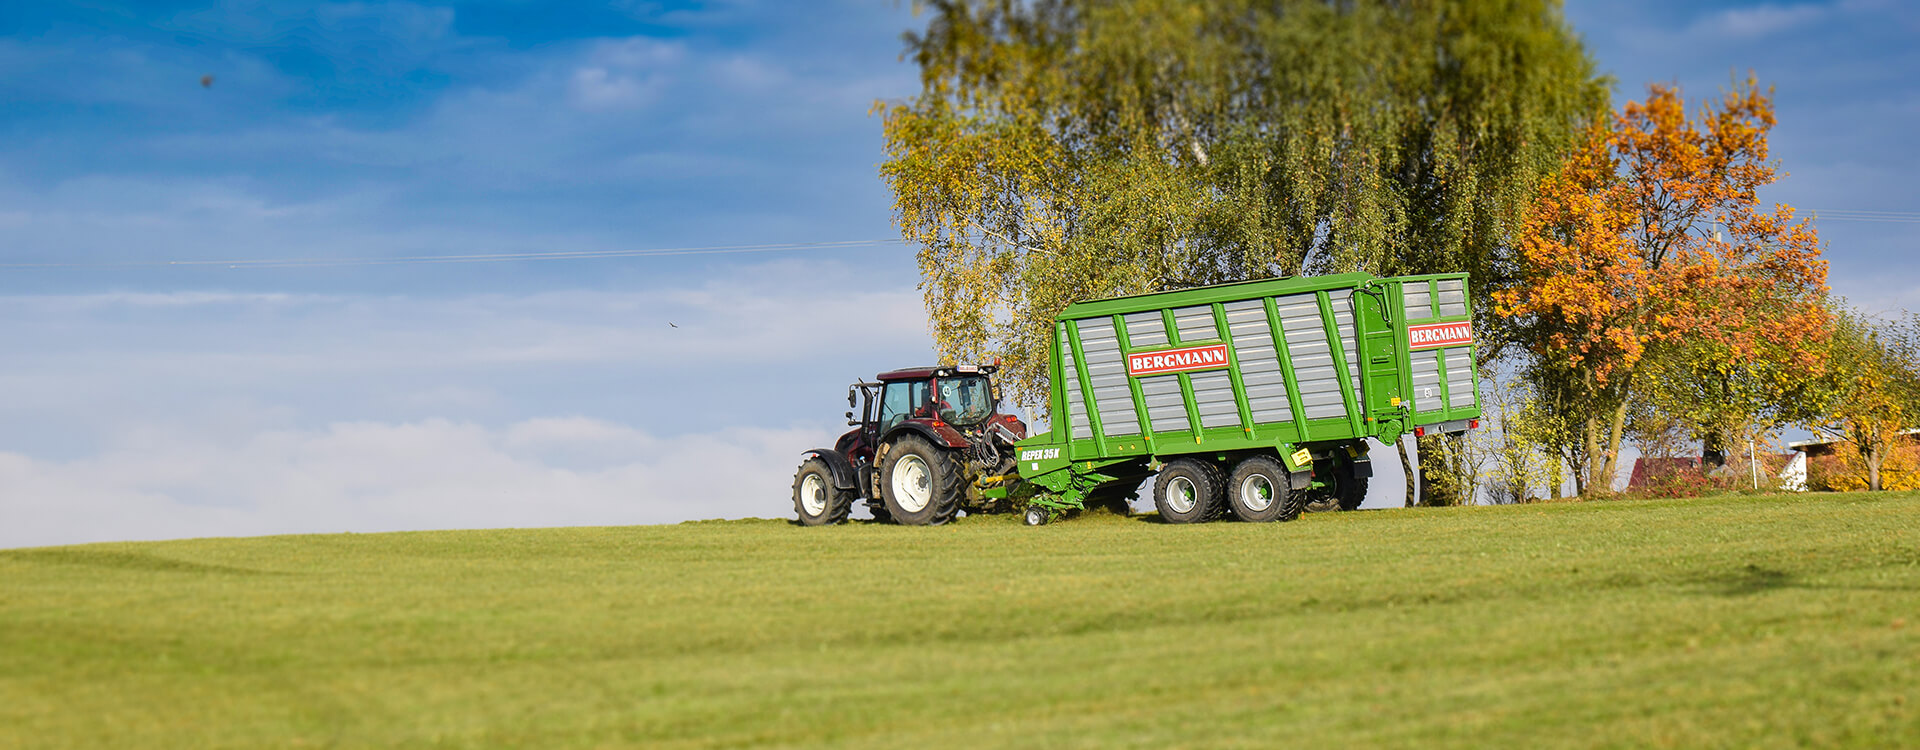 Forge wagon and tractor grass silage